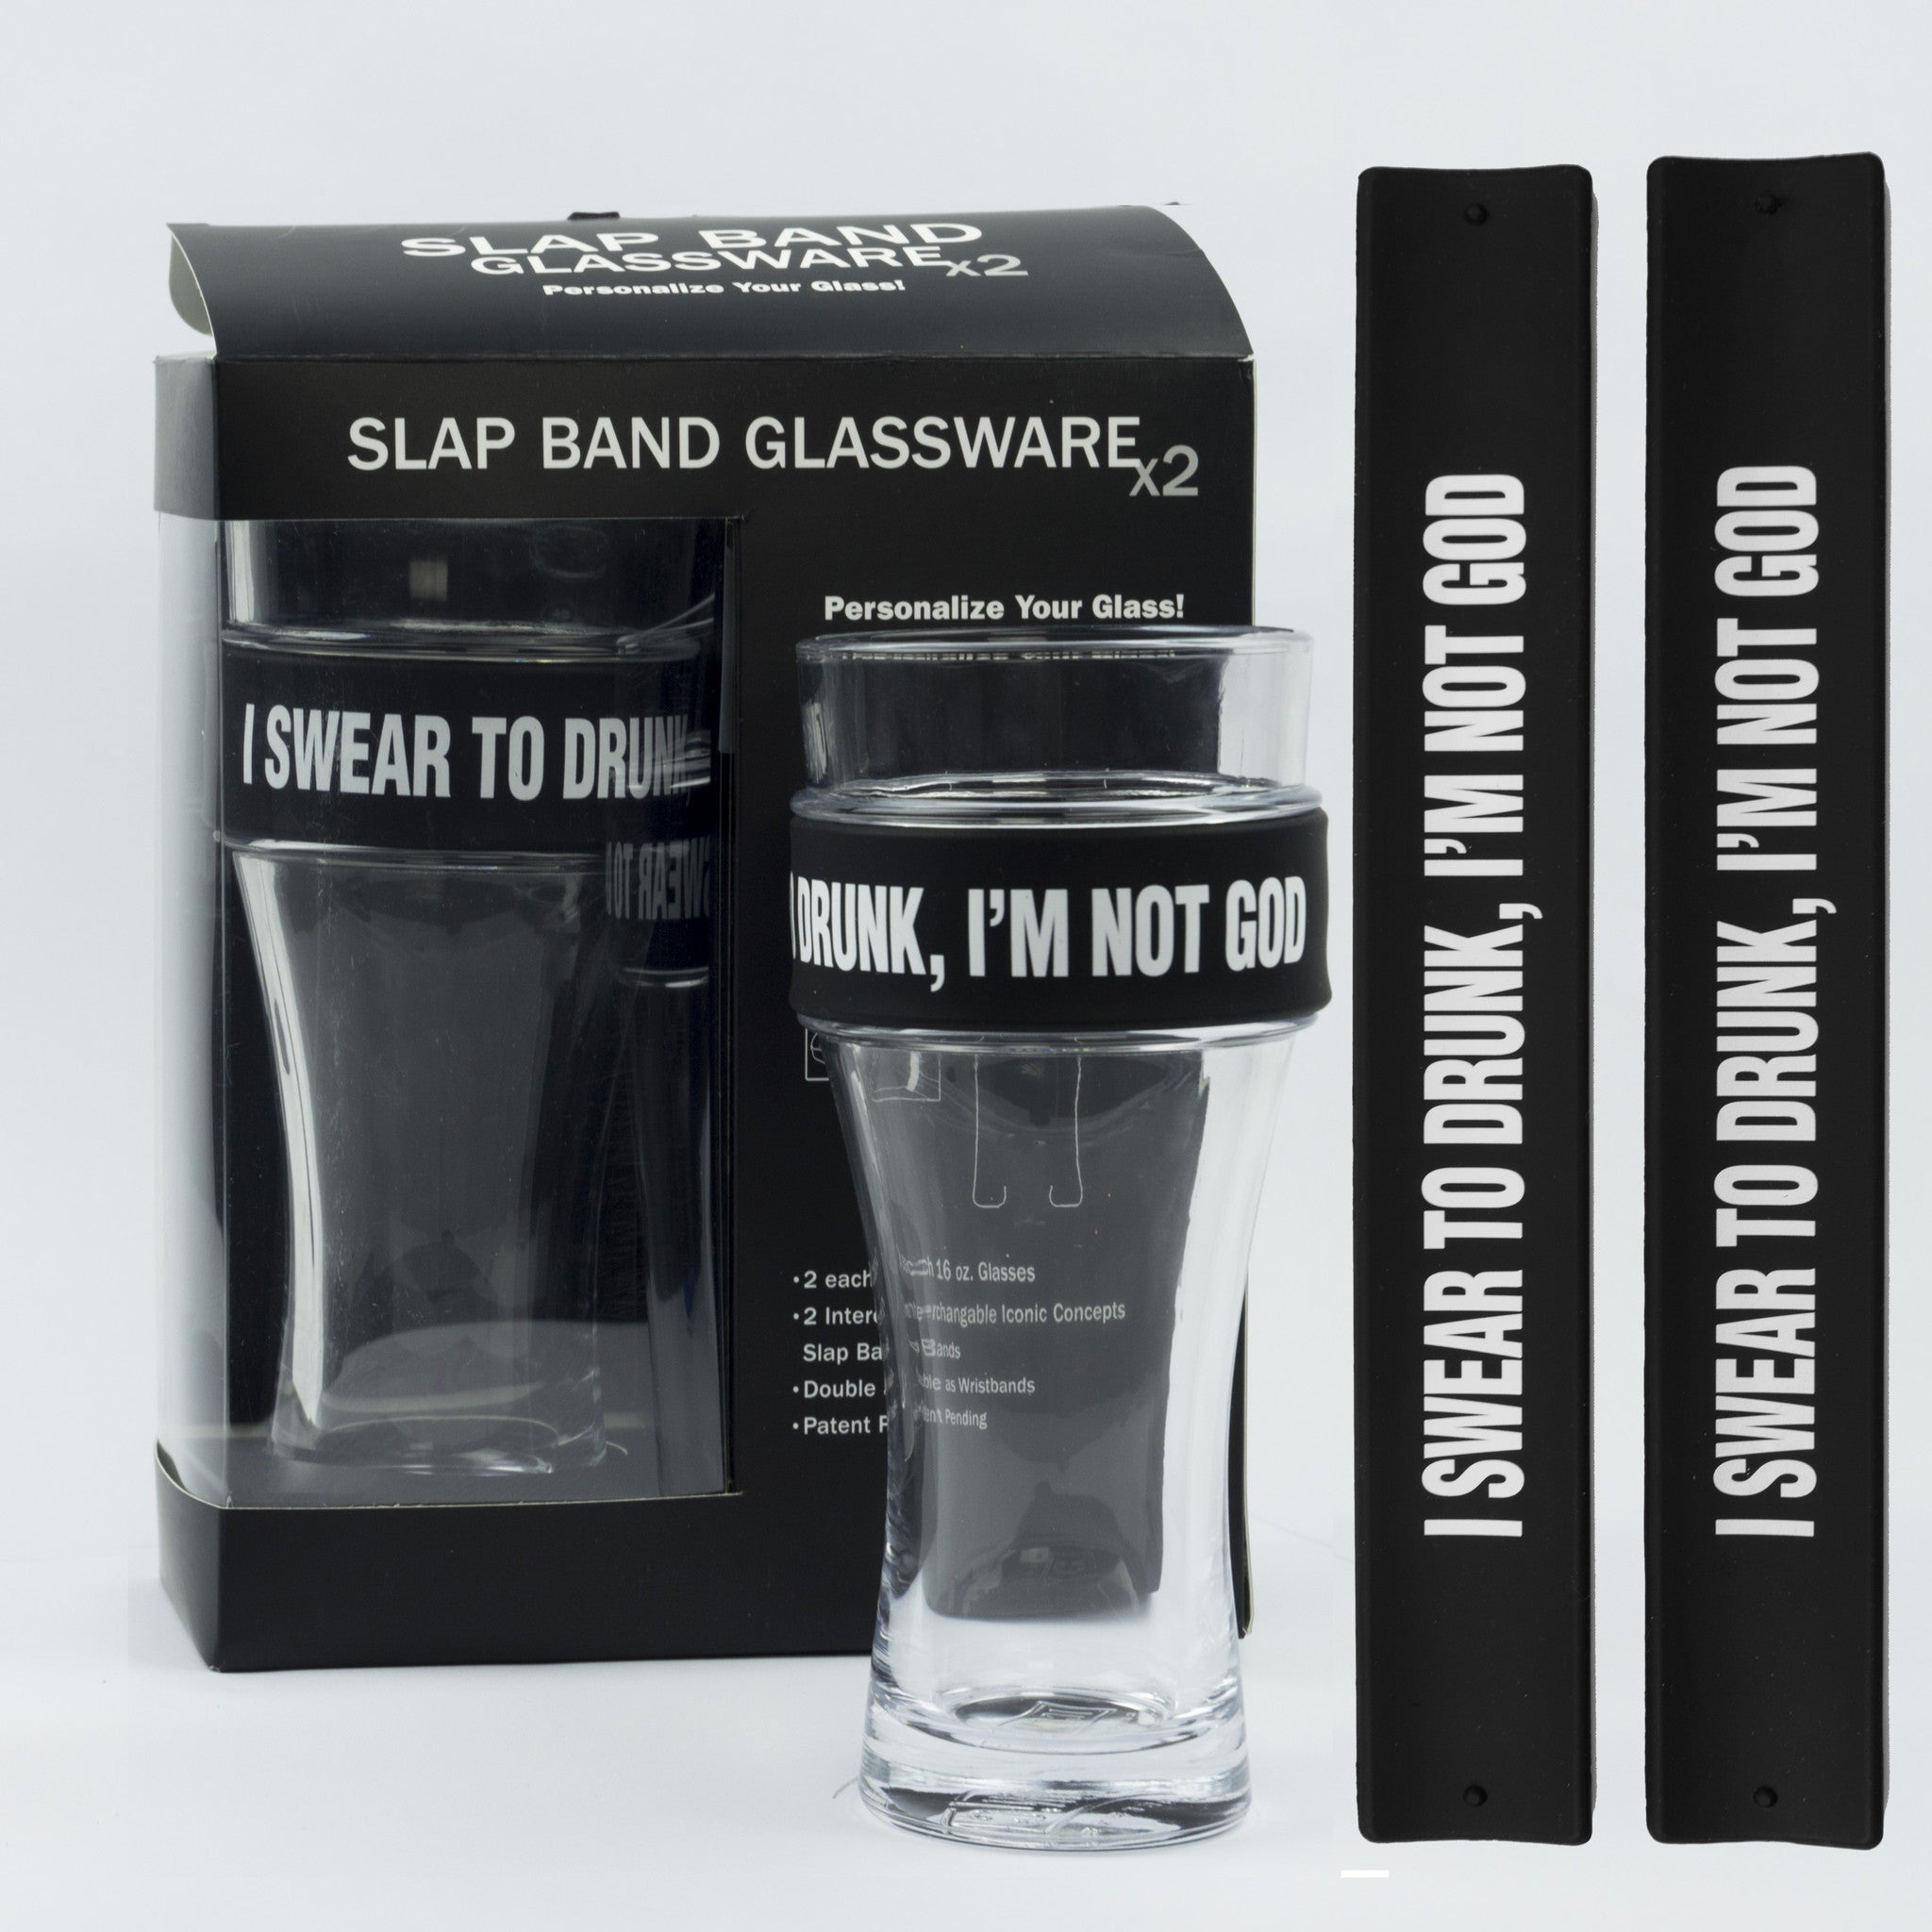 Humor Slap Band Glassware - I Swear To Drunk, I